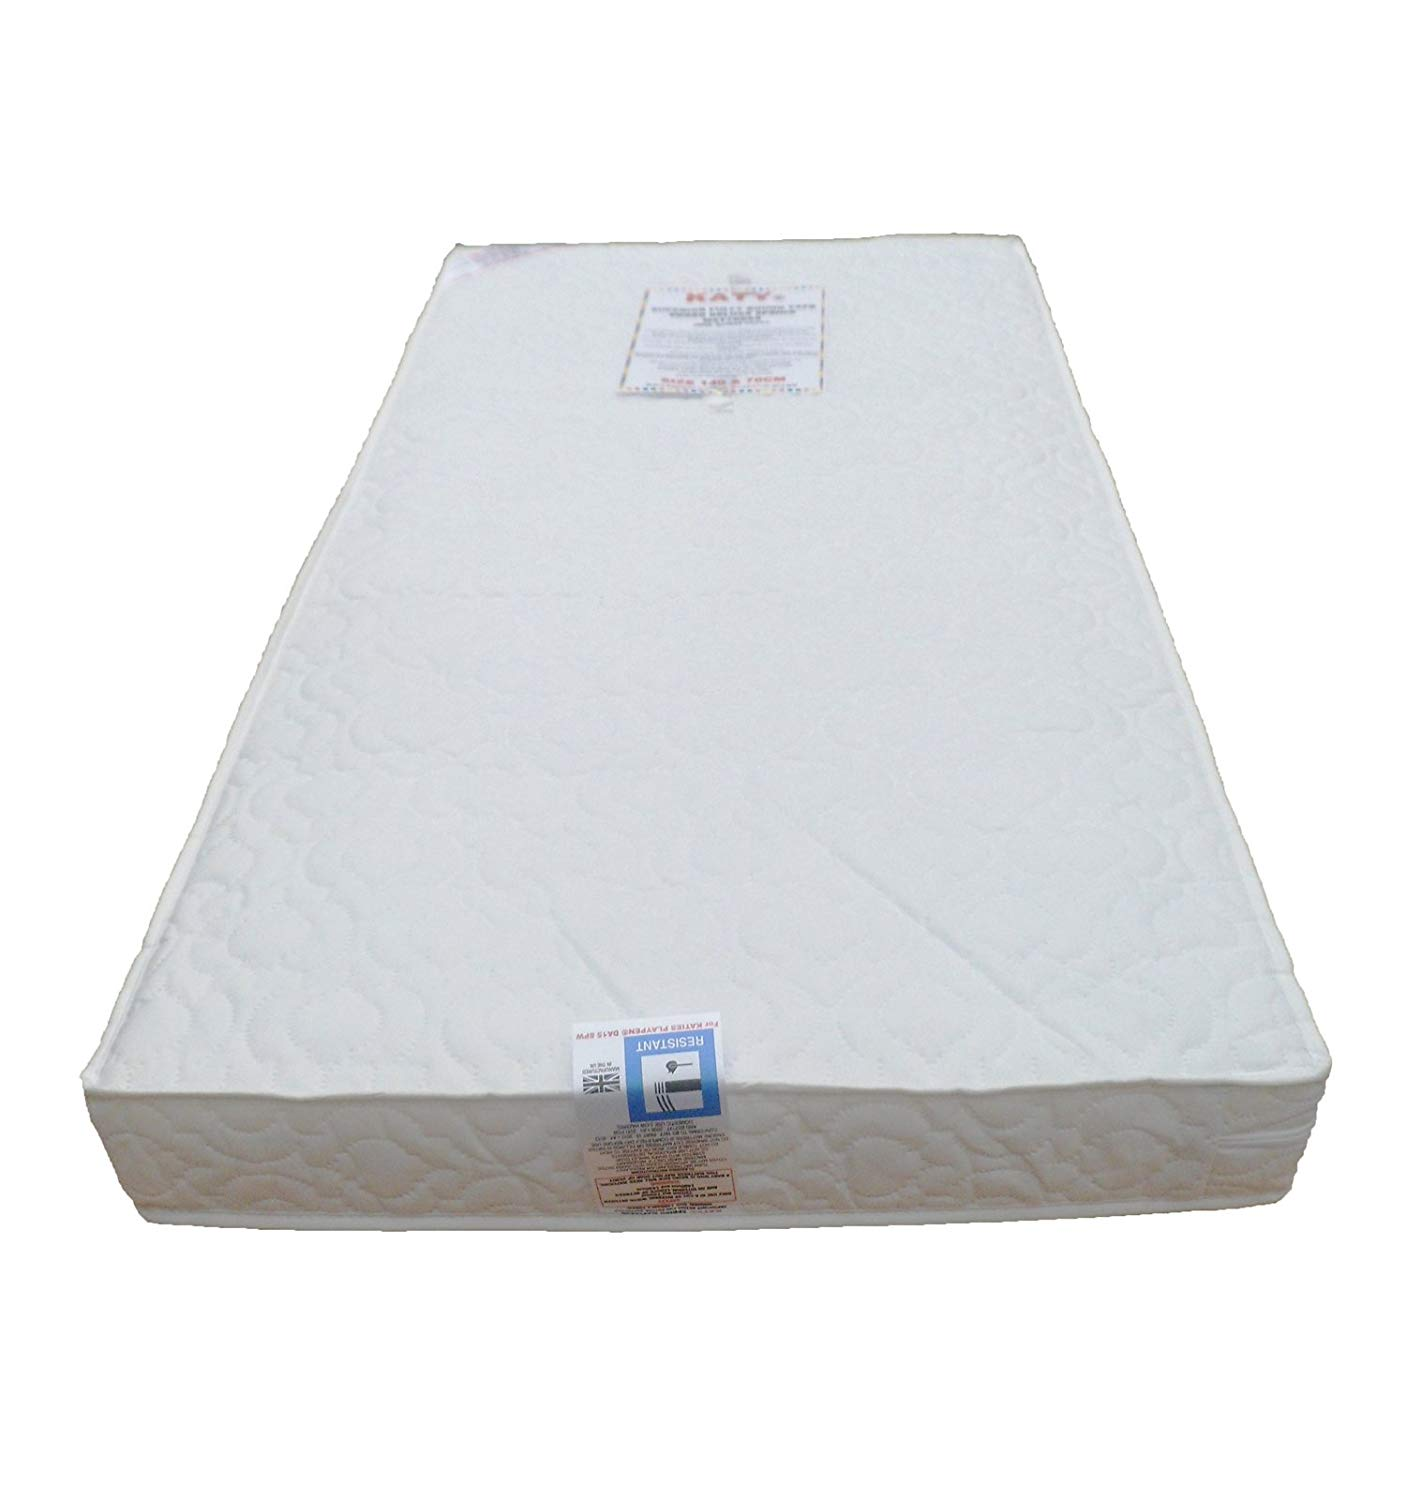 katy deluxe cot bed mattress.jpg